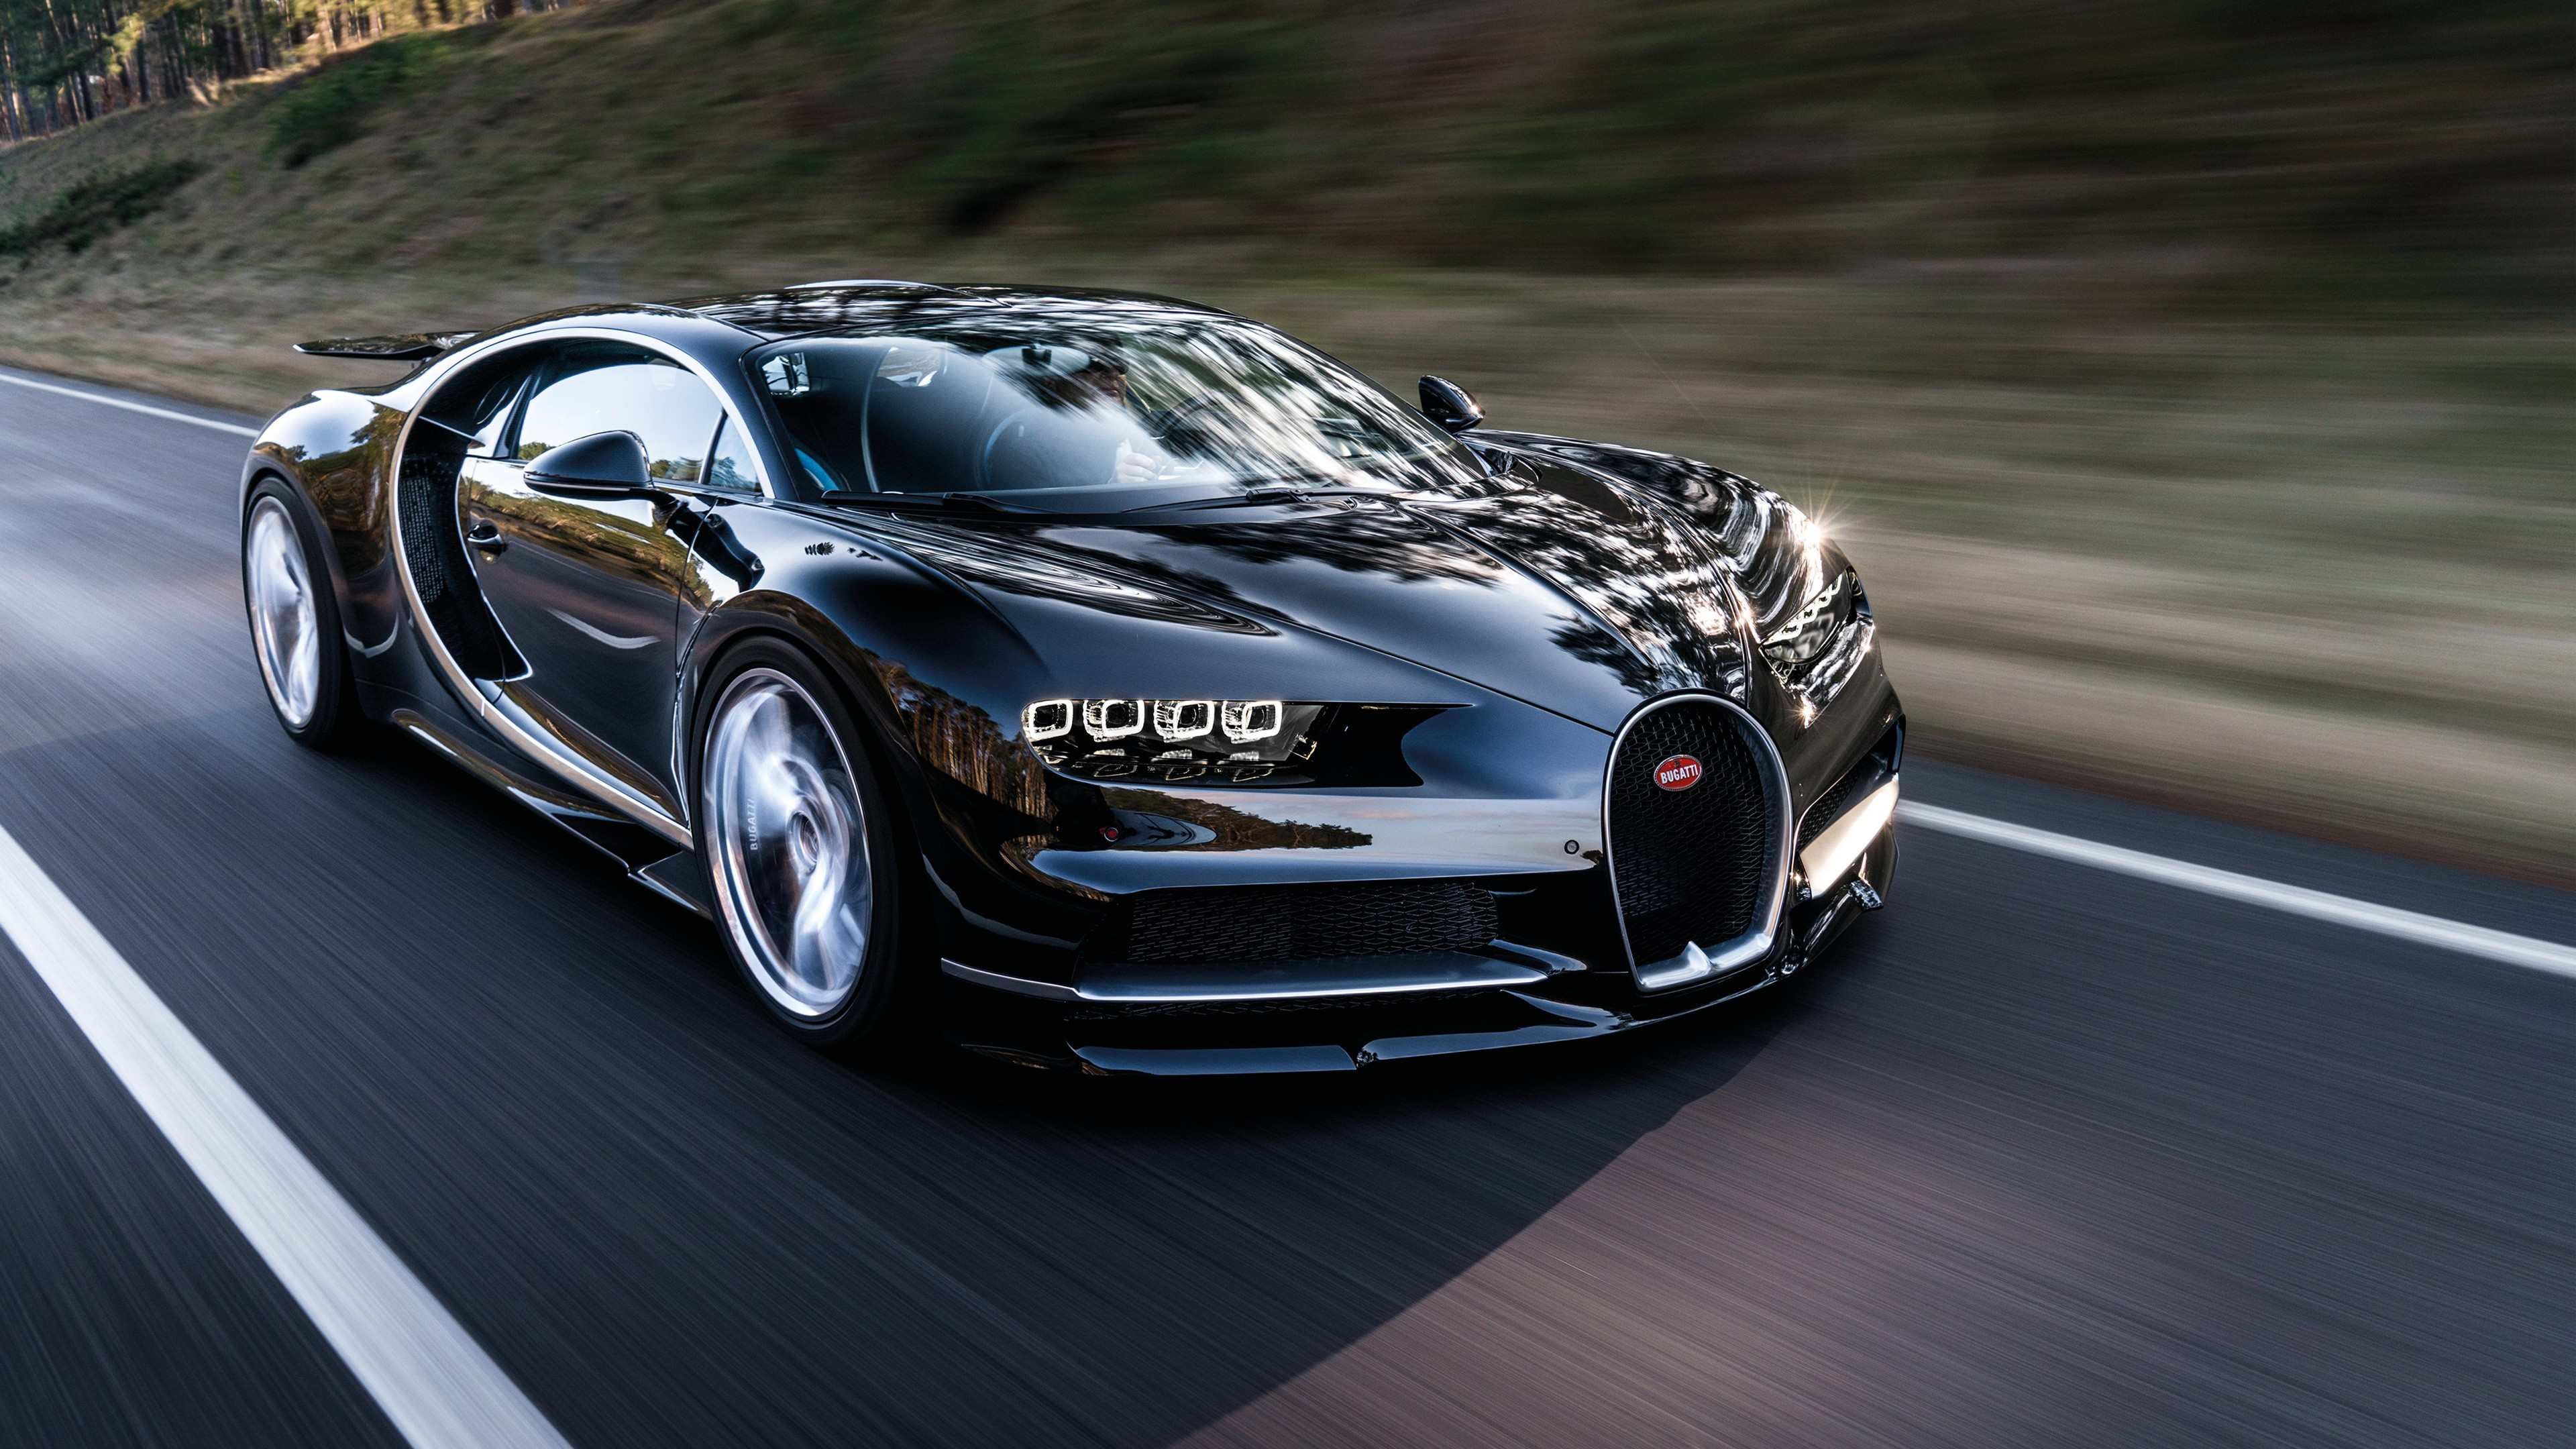 2017 bugatti chiron geneva auto expo wallpaper hd car